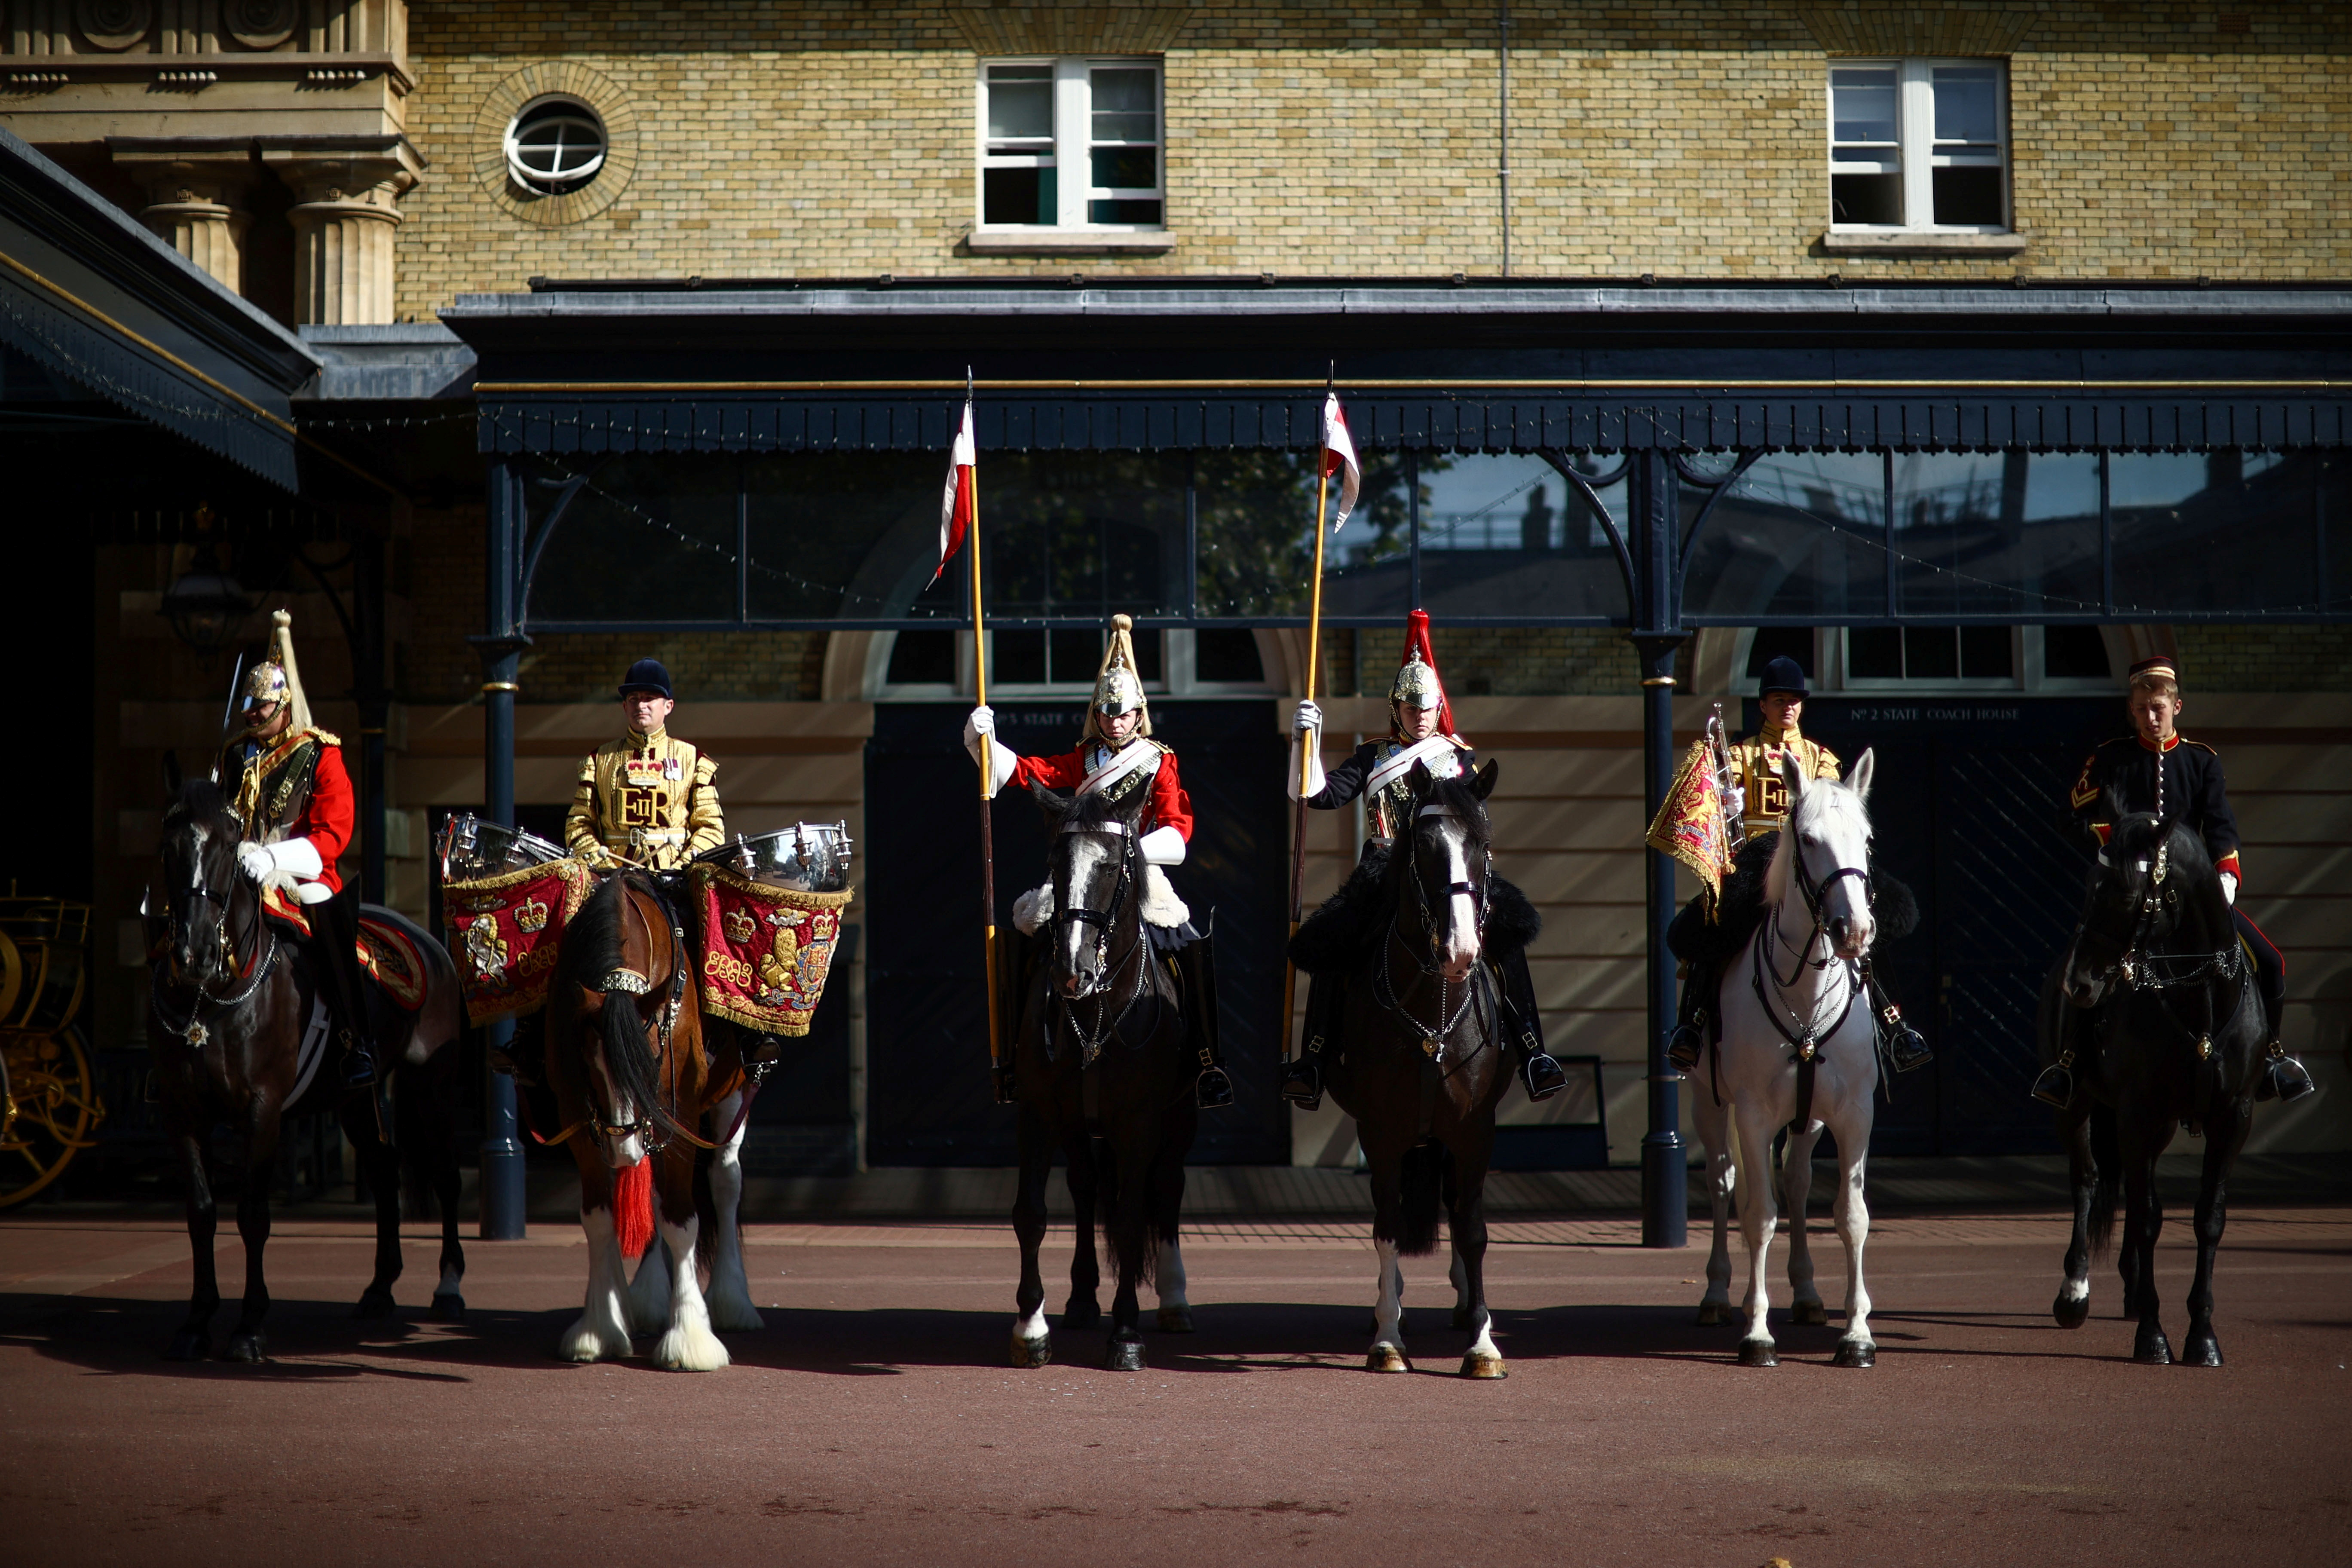 Members of the Household Cavalry ride on horses in the courtyard of the Royal Mews during the media launch of the 'Platinum Jubilee Celebration: A Gallop Through History' at Buckingham Palace in London, Britain, September 21, 2021. REUTERS/Hannah McKay